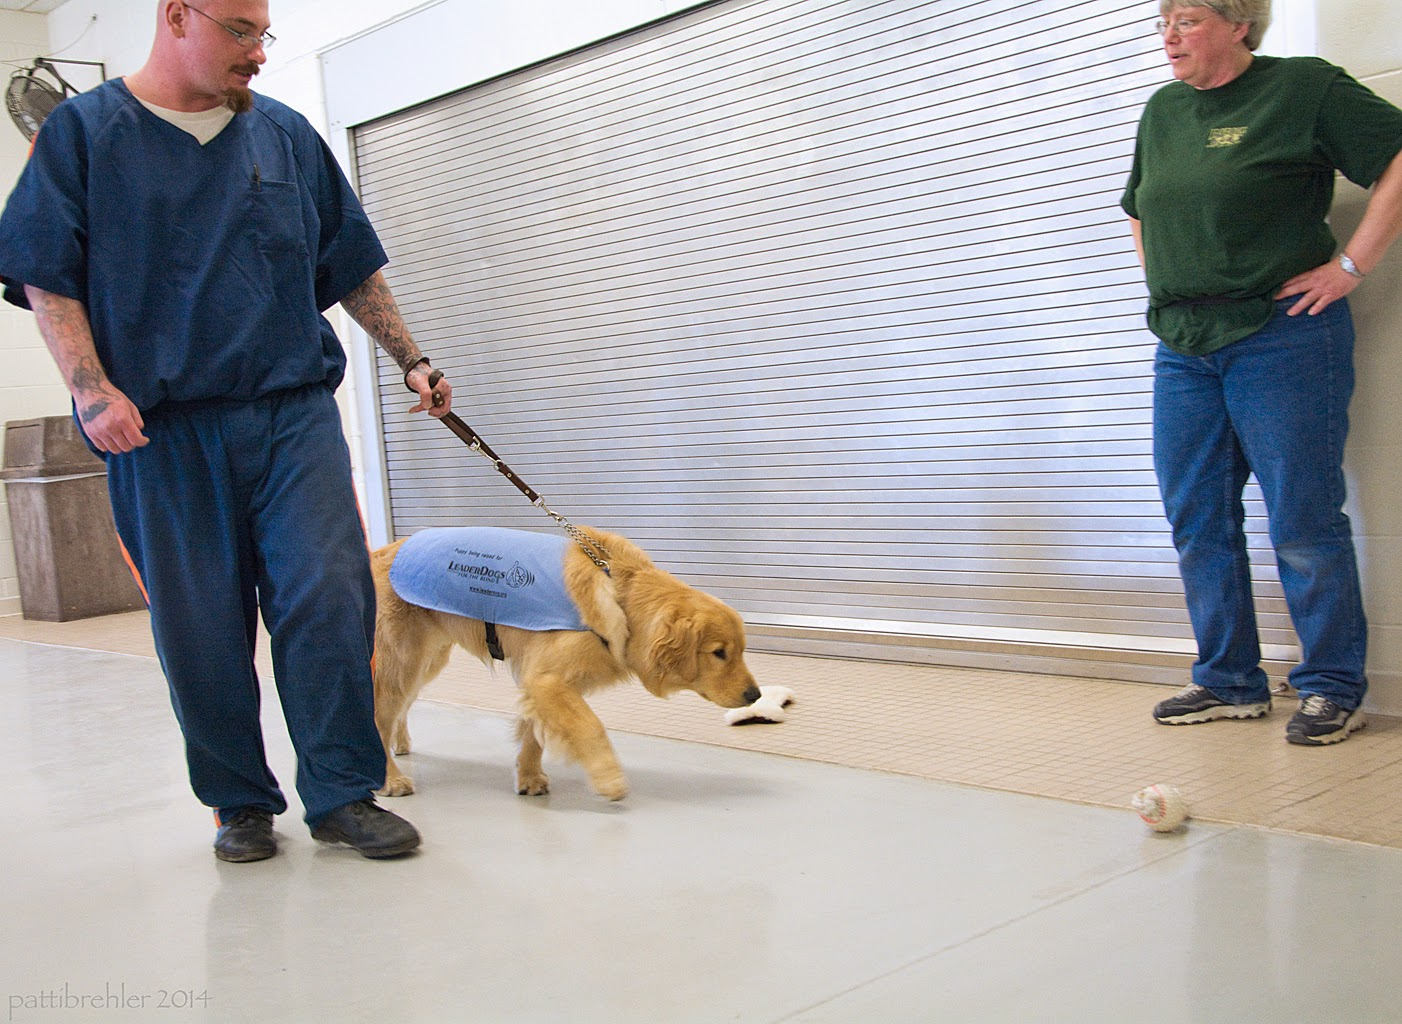 A man is walking from left to right, he is dressed in the blue prison uniform. He is holding a brown leather leash in he left hand. The leash is tight, attached to a golden retriever that is wearing the baby blue training jecket. The dog is on the man's left side, but is pullig toward some kind of round dog toy that is lying on the floor to the right. The woman dressed in a grean t-shirt and blue jeans is standing against a metal wall on the right, she has her hands on her hips and is instructing the man with the dog. There is a stuffed bone shaped toy on the other side of the dog on the floor.